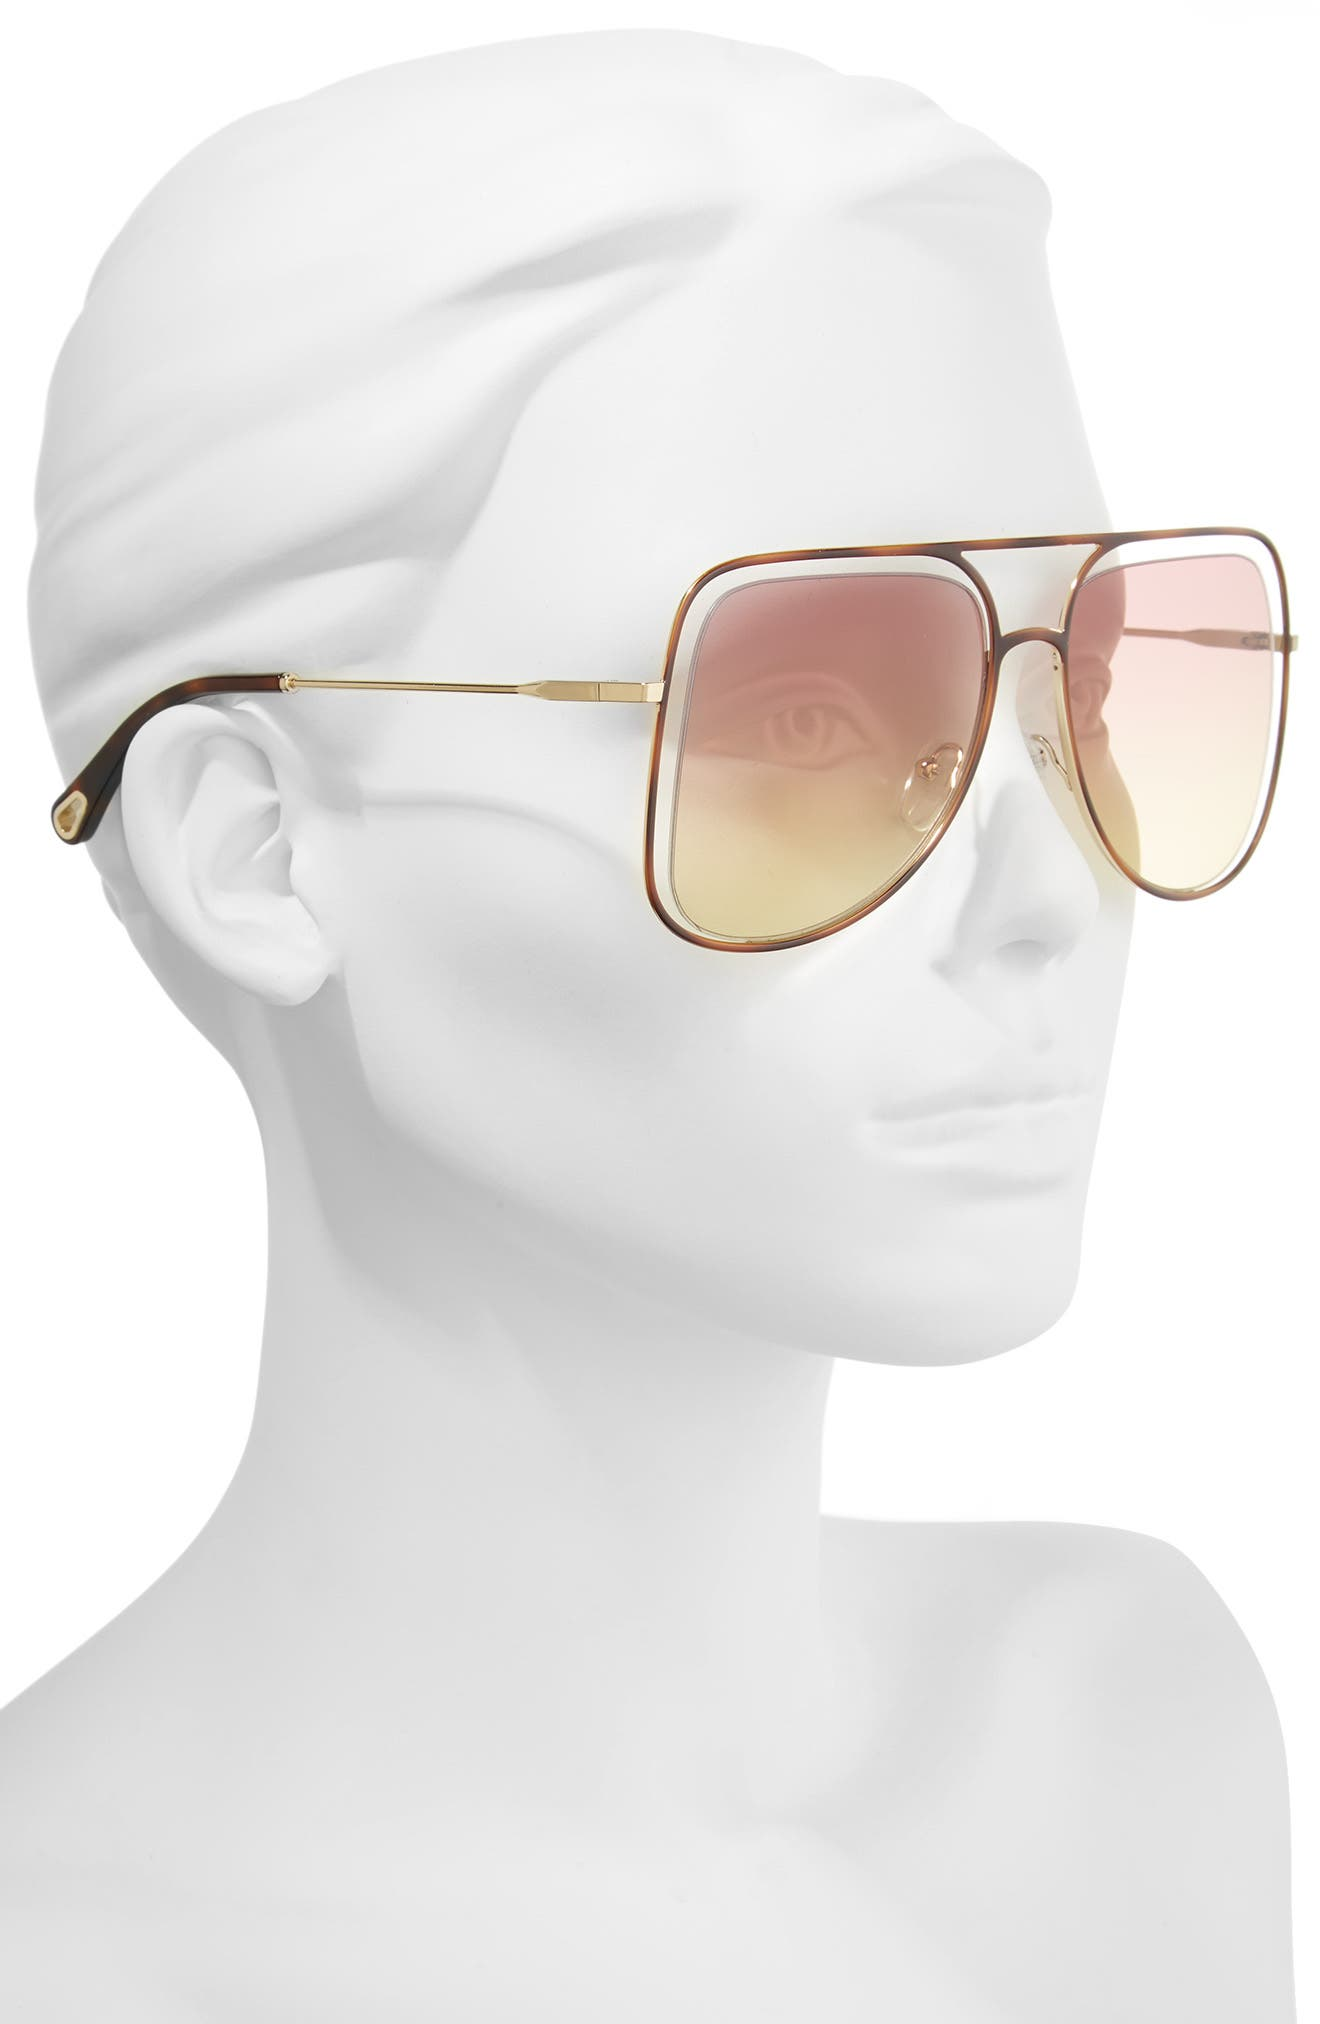 57mm Halo Frame Aviator Sunglasses,                             Alternate thumbnail 2, color,                             Havana/ Rose Honey